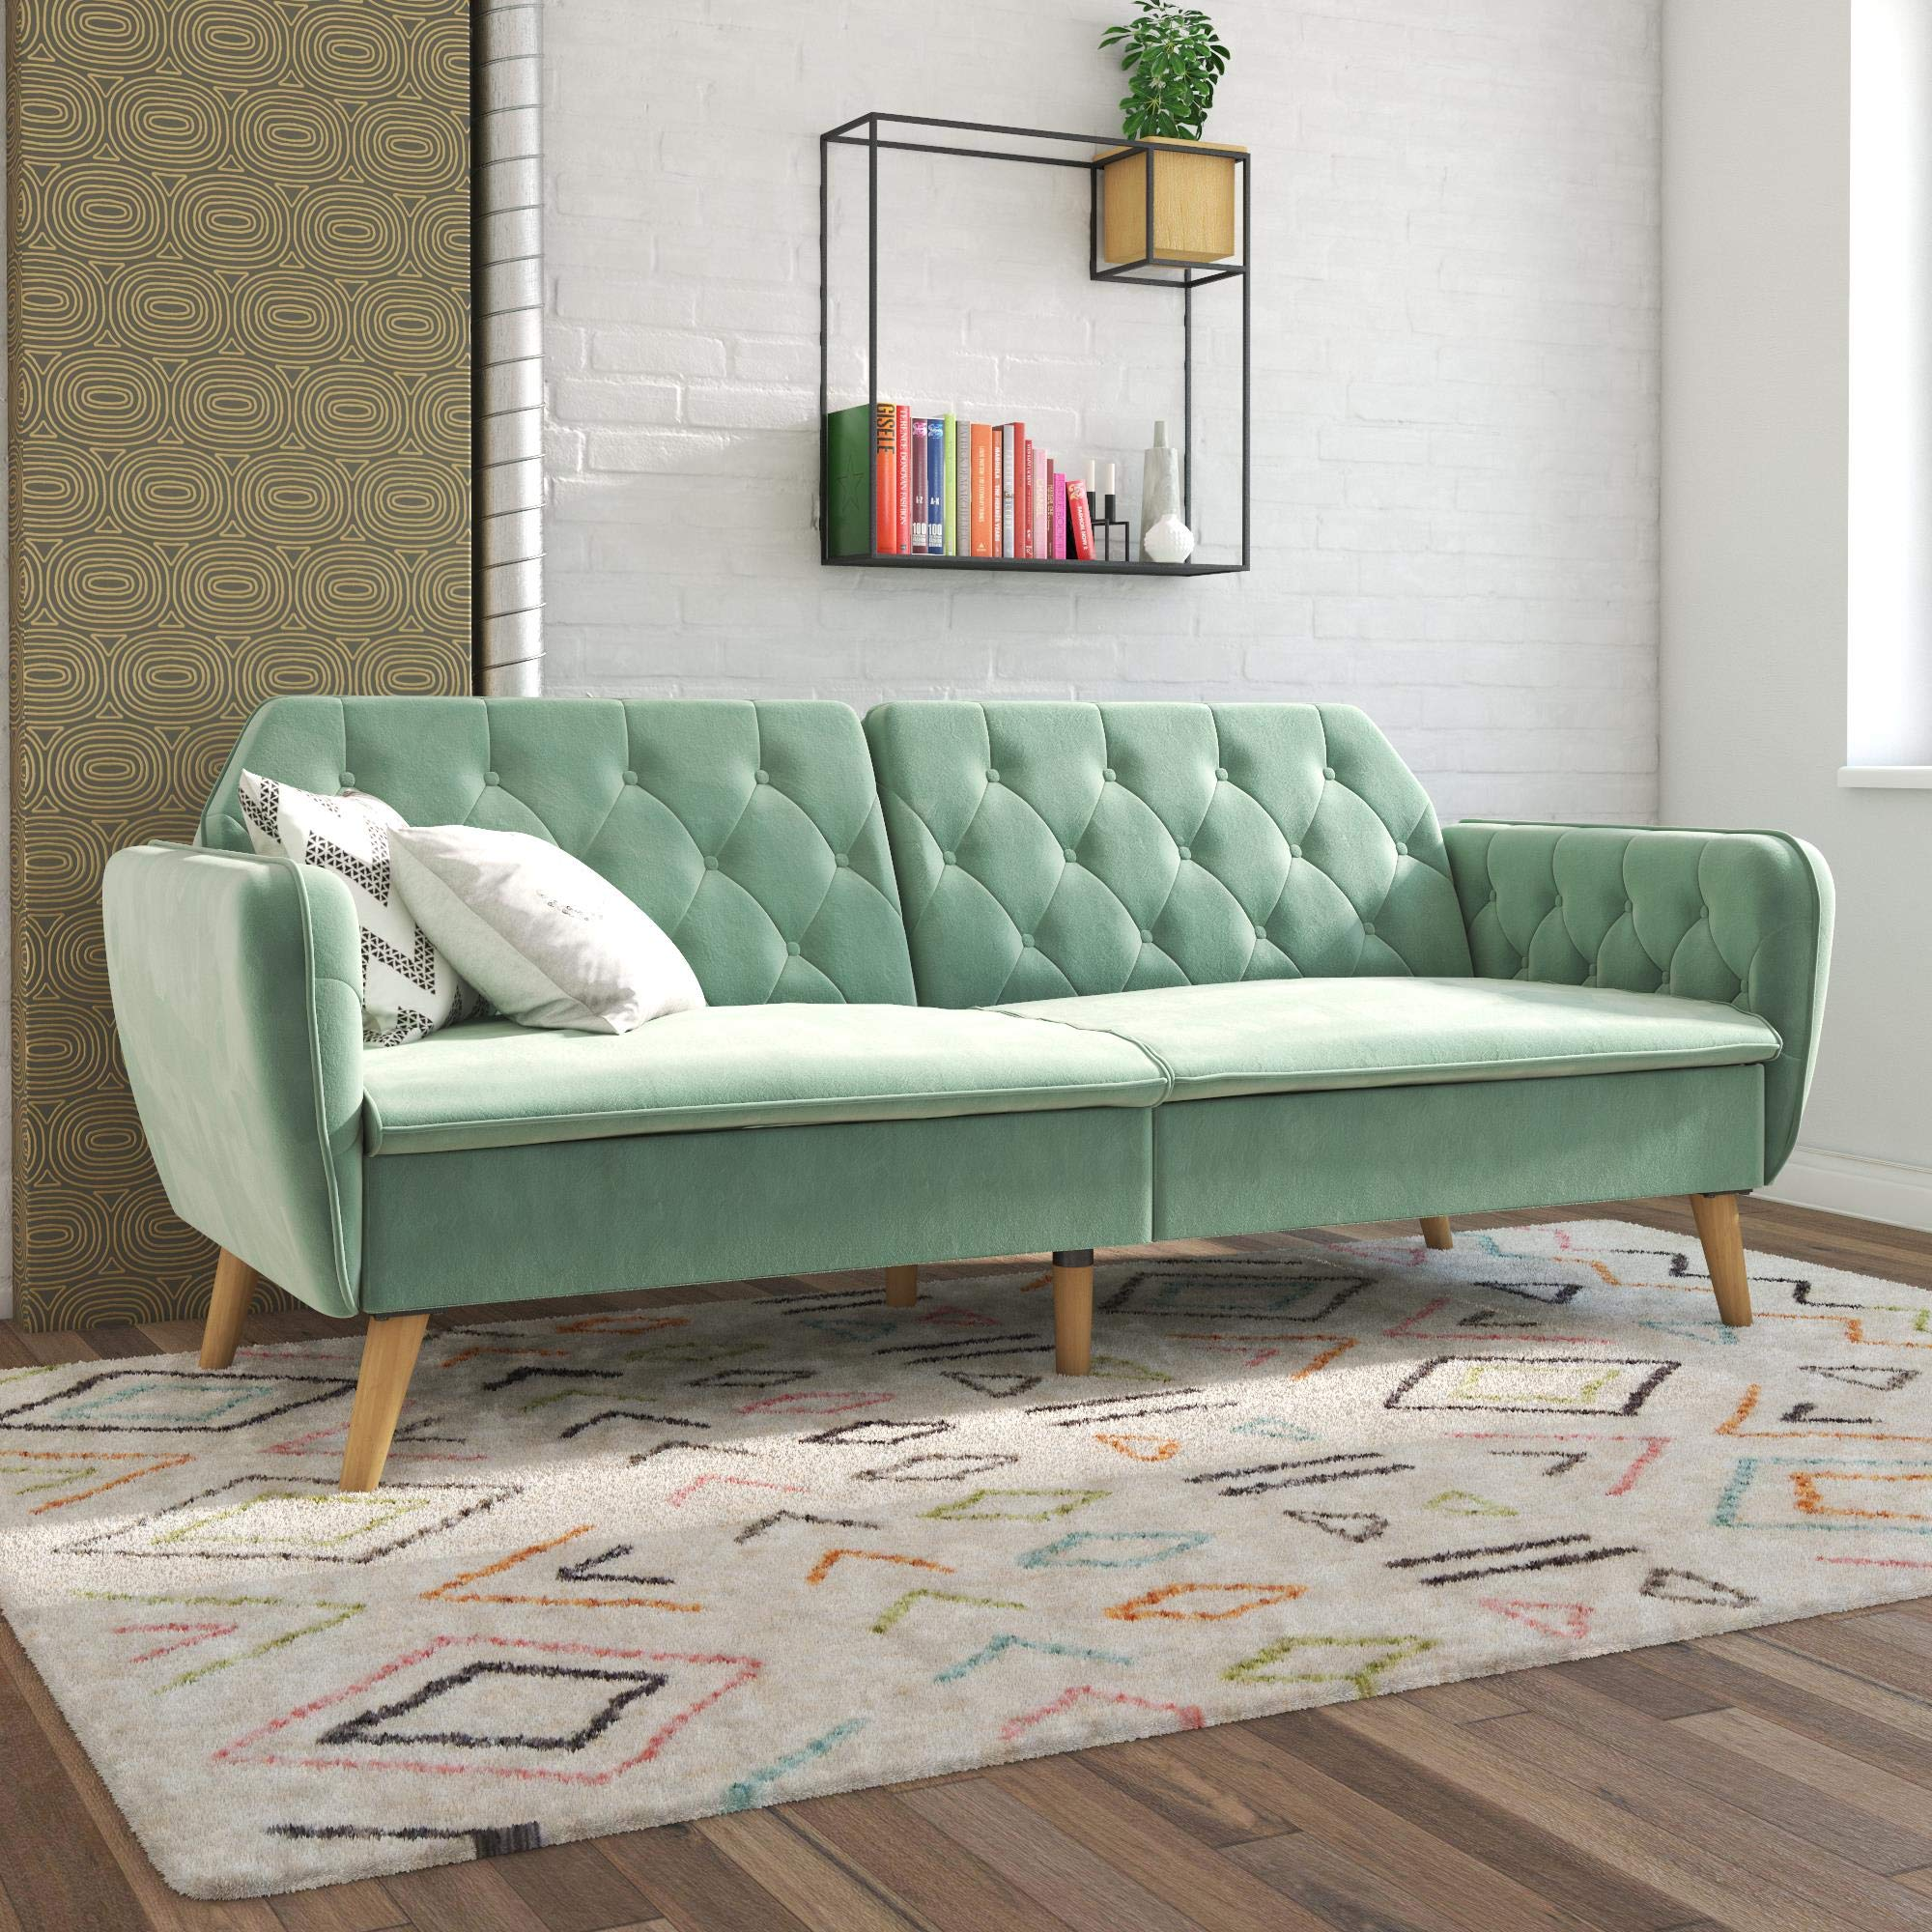 Novogratz 2144879N Tallulah Memory Foam Sofa Bed, Light Green Velvet Futon, by Novogratz